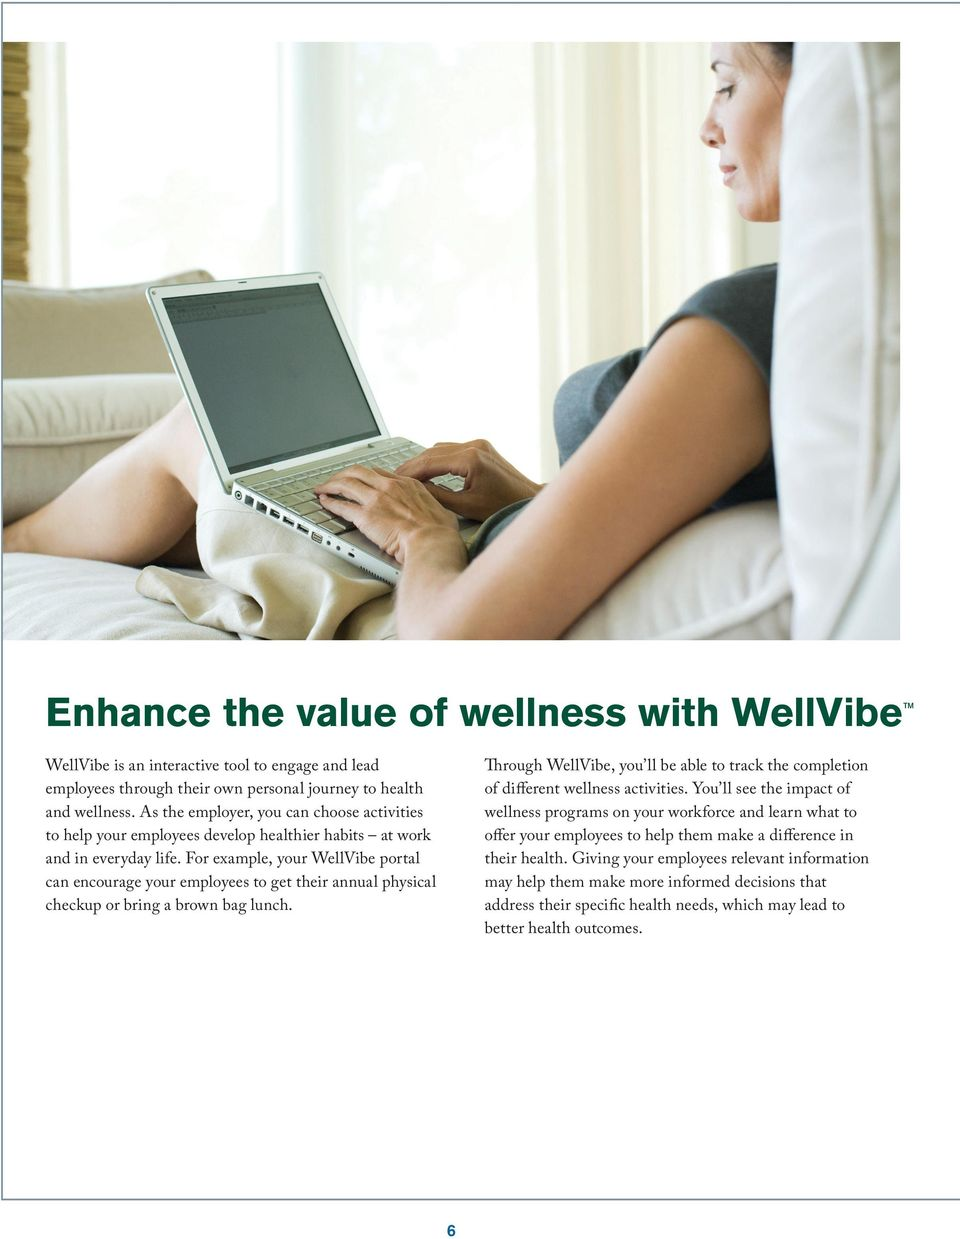 For example, your WellVibe portal can encourage your employees to get their annual physical checkup or bring a brown bag lunch.